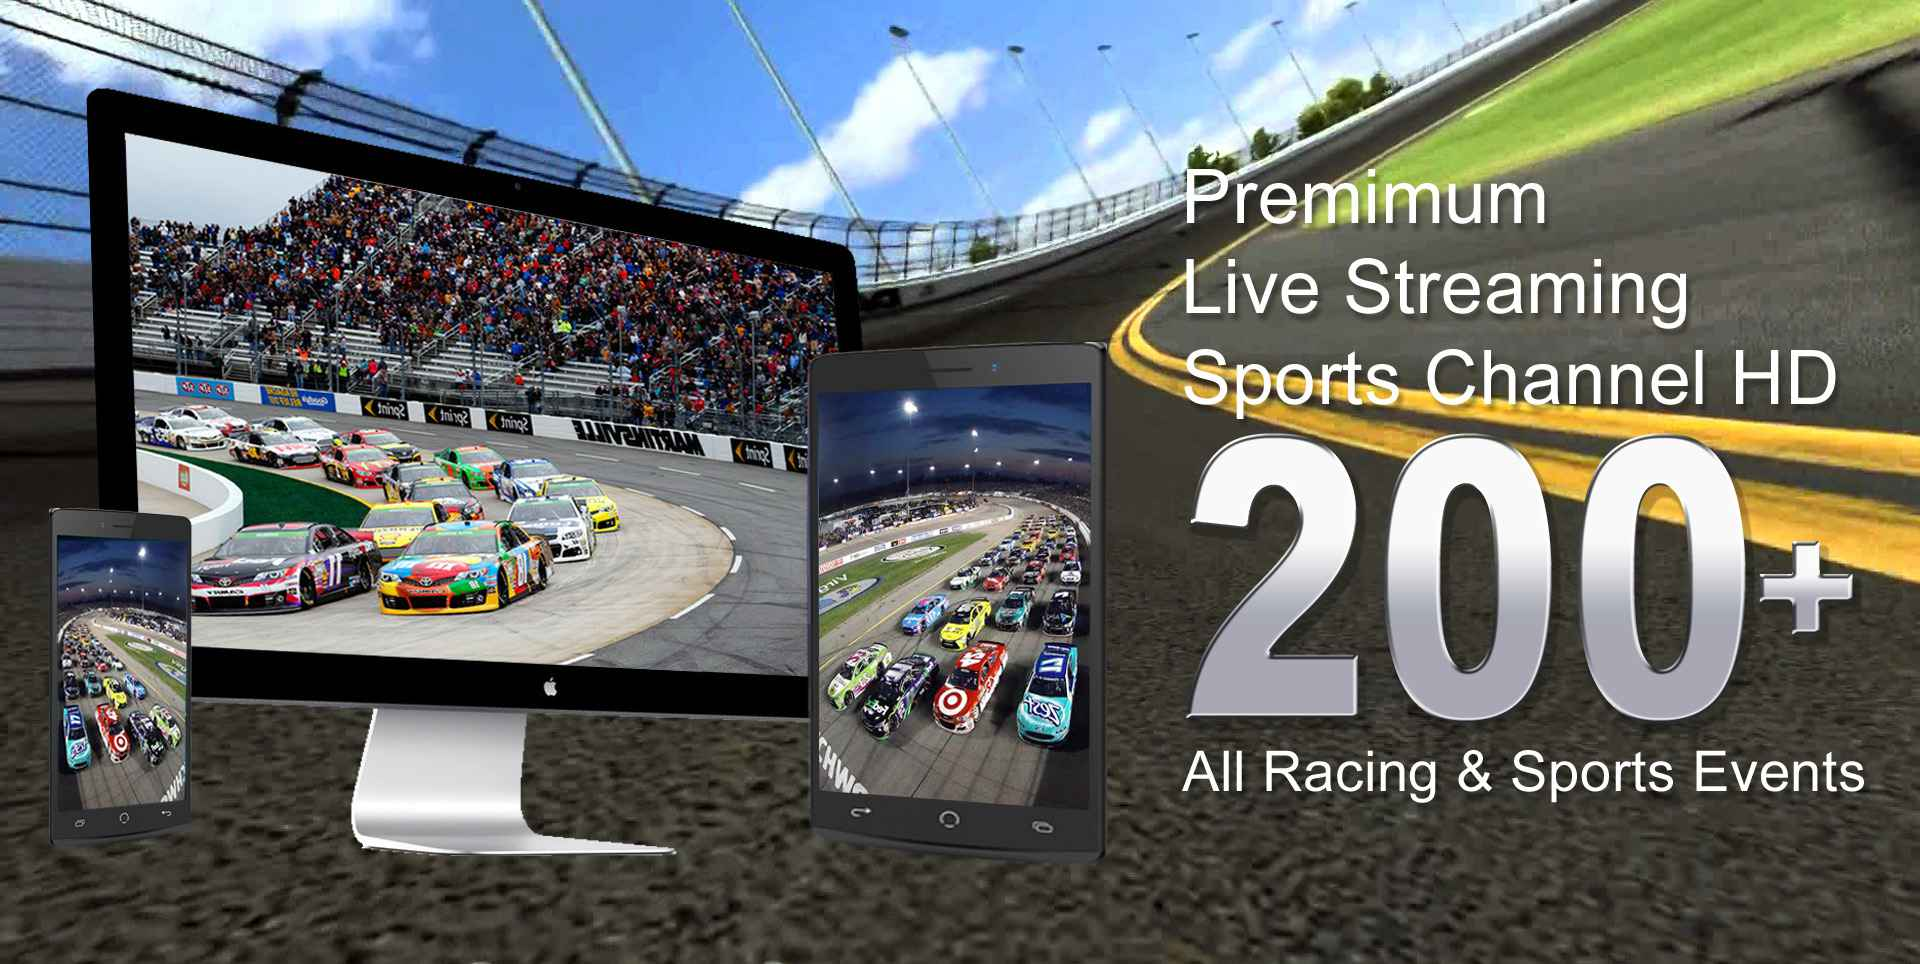 Watch 2015 Miami 500 Road Racing Live